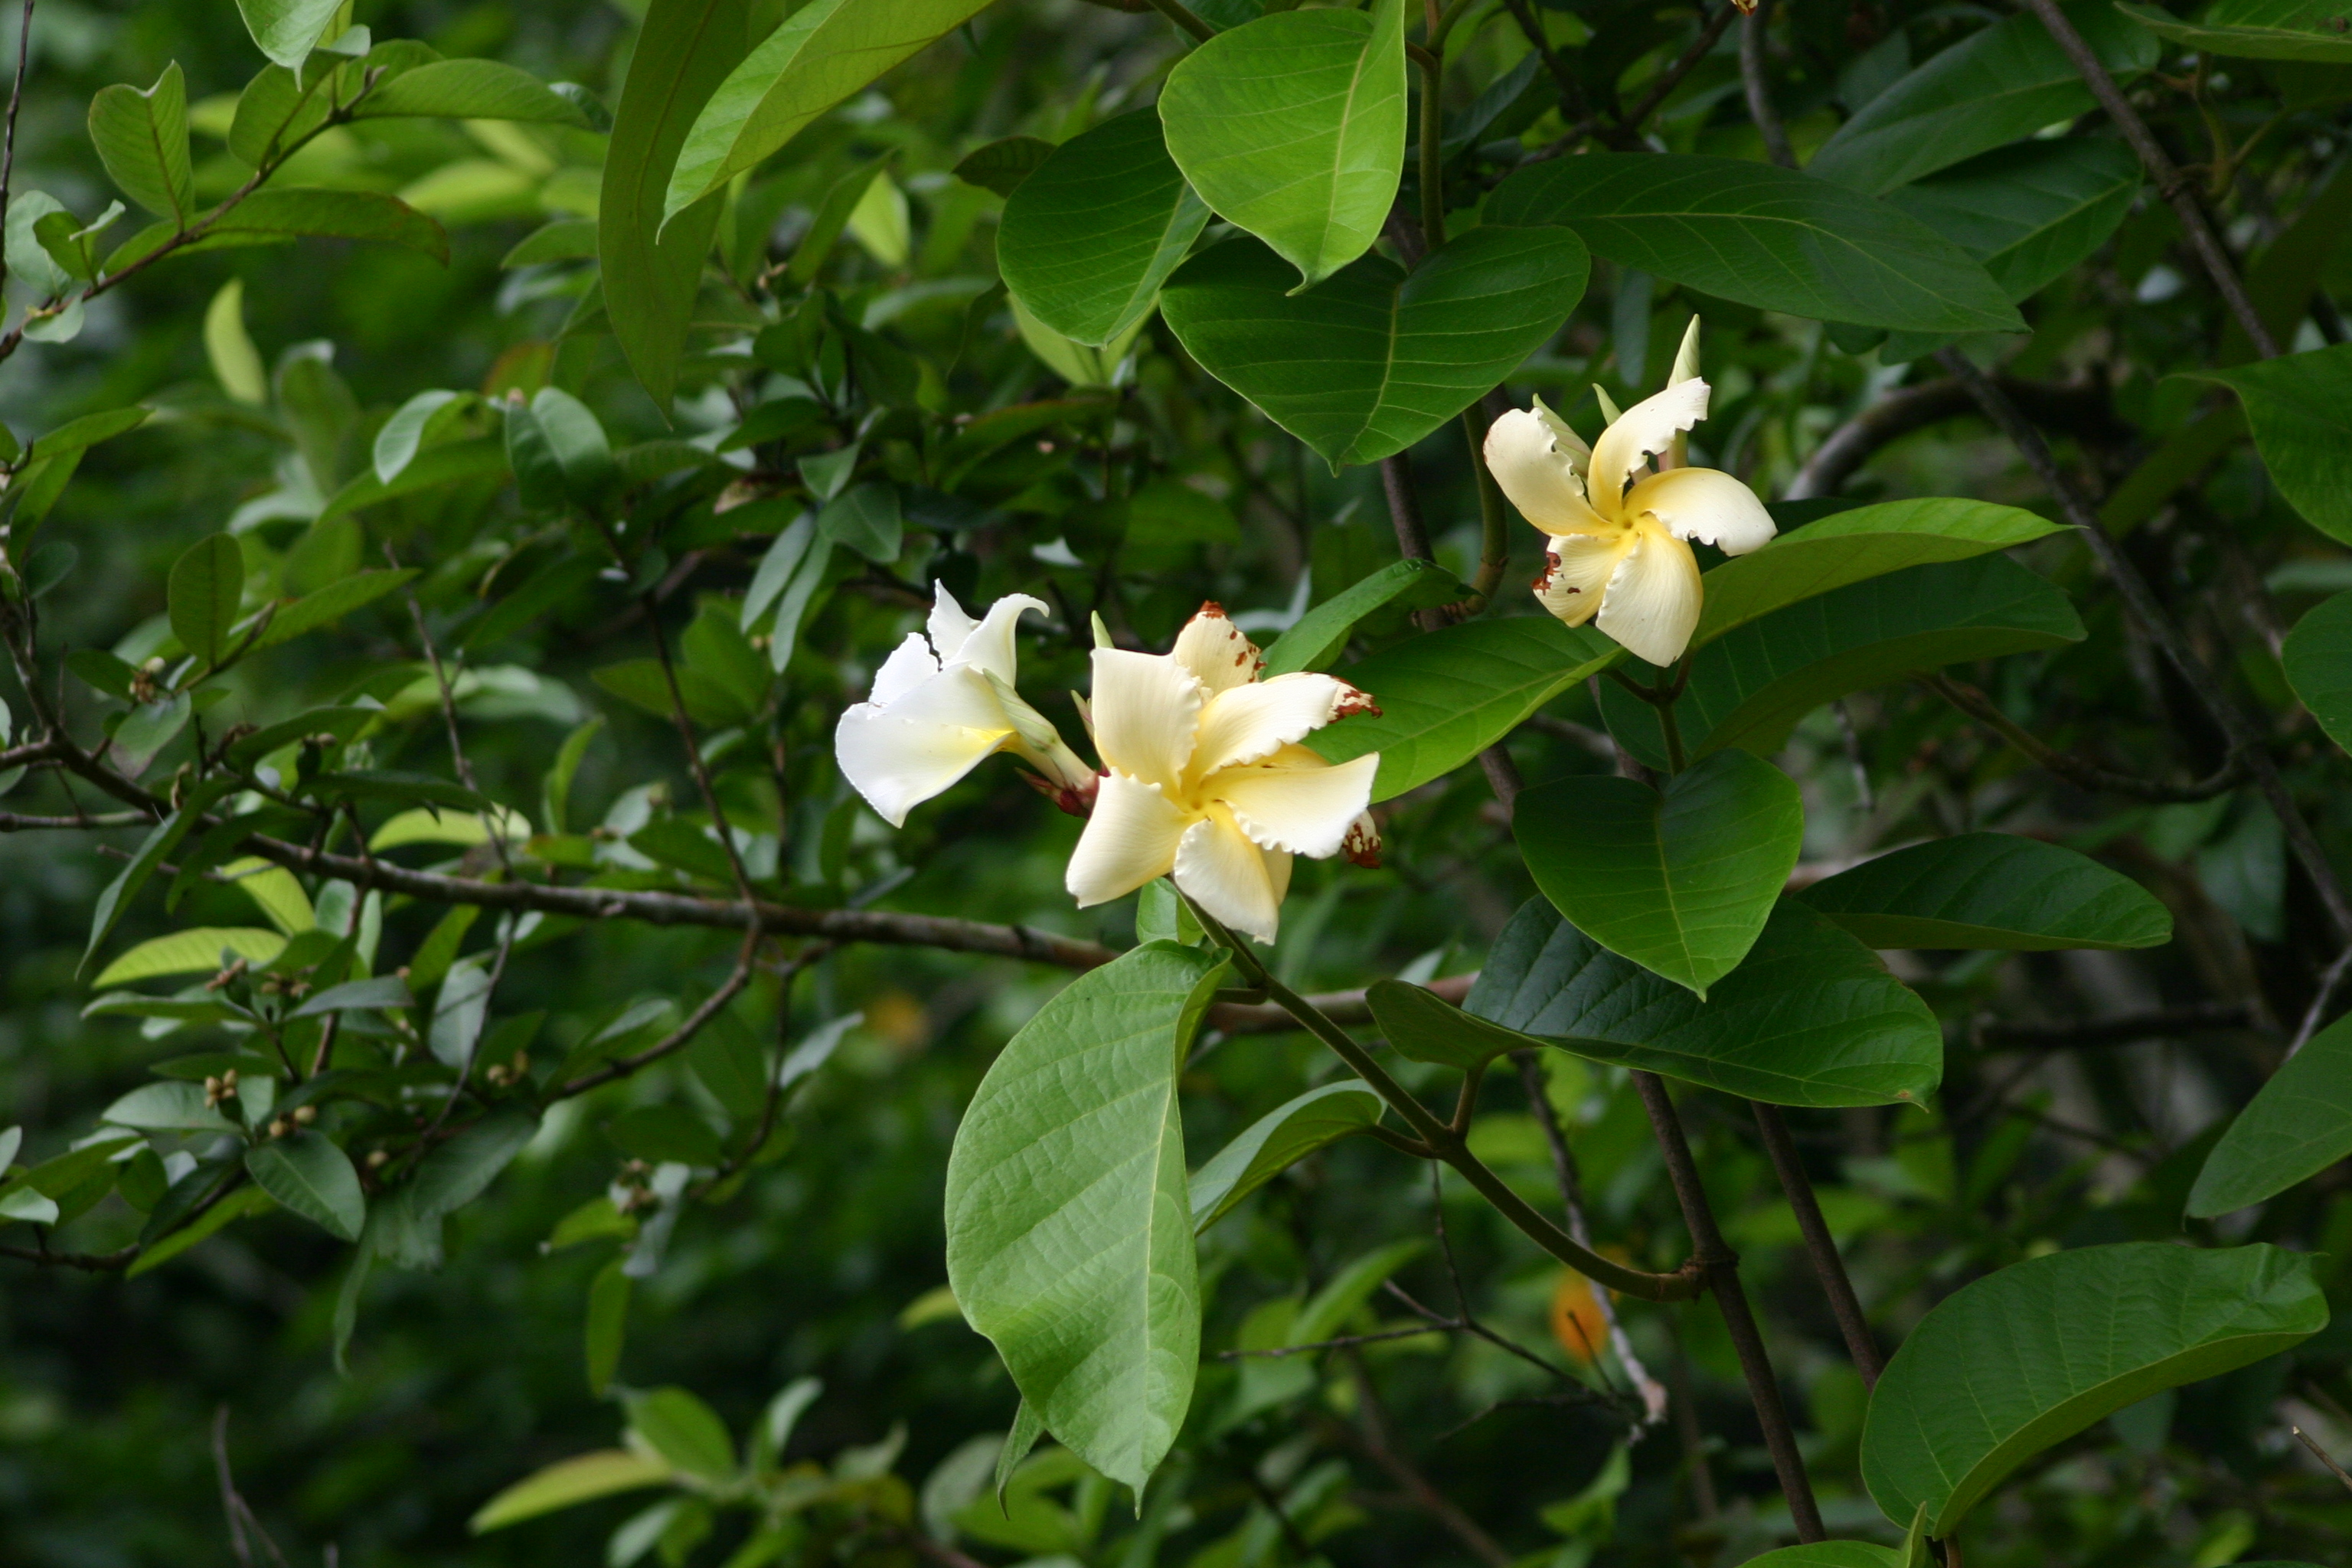 /wp-content/uploads/2020/10/Shrub%20from%20Periyar%20Tiger%20Reserve%20-Apocynaceae-.JPG